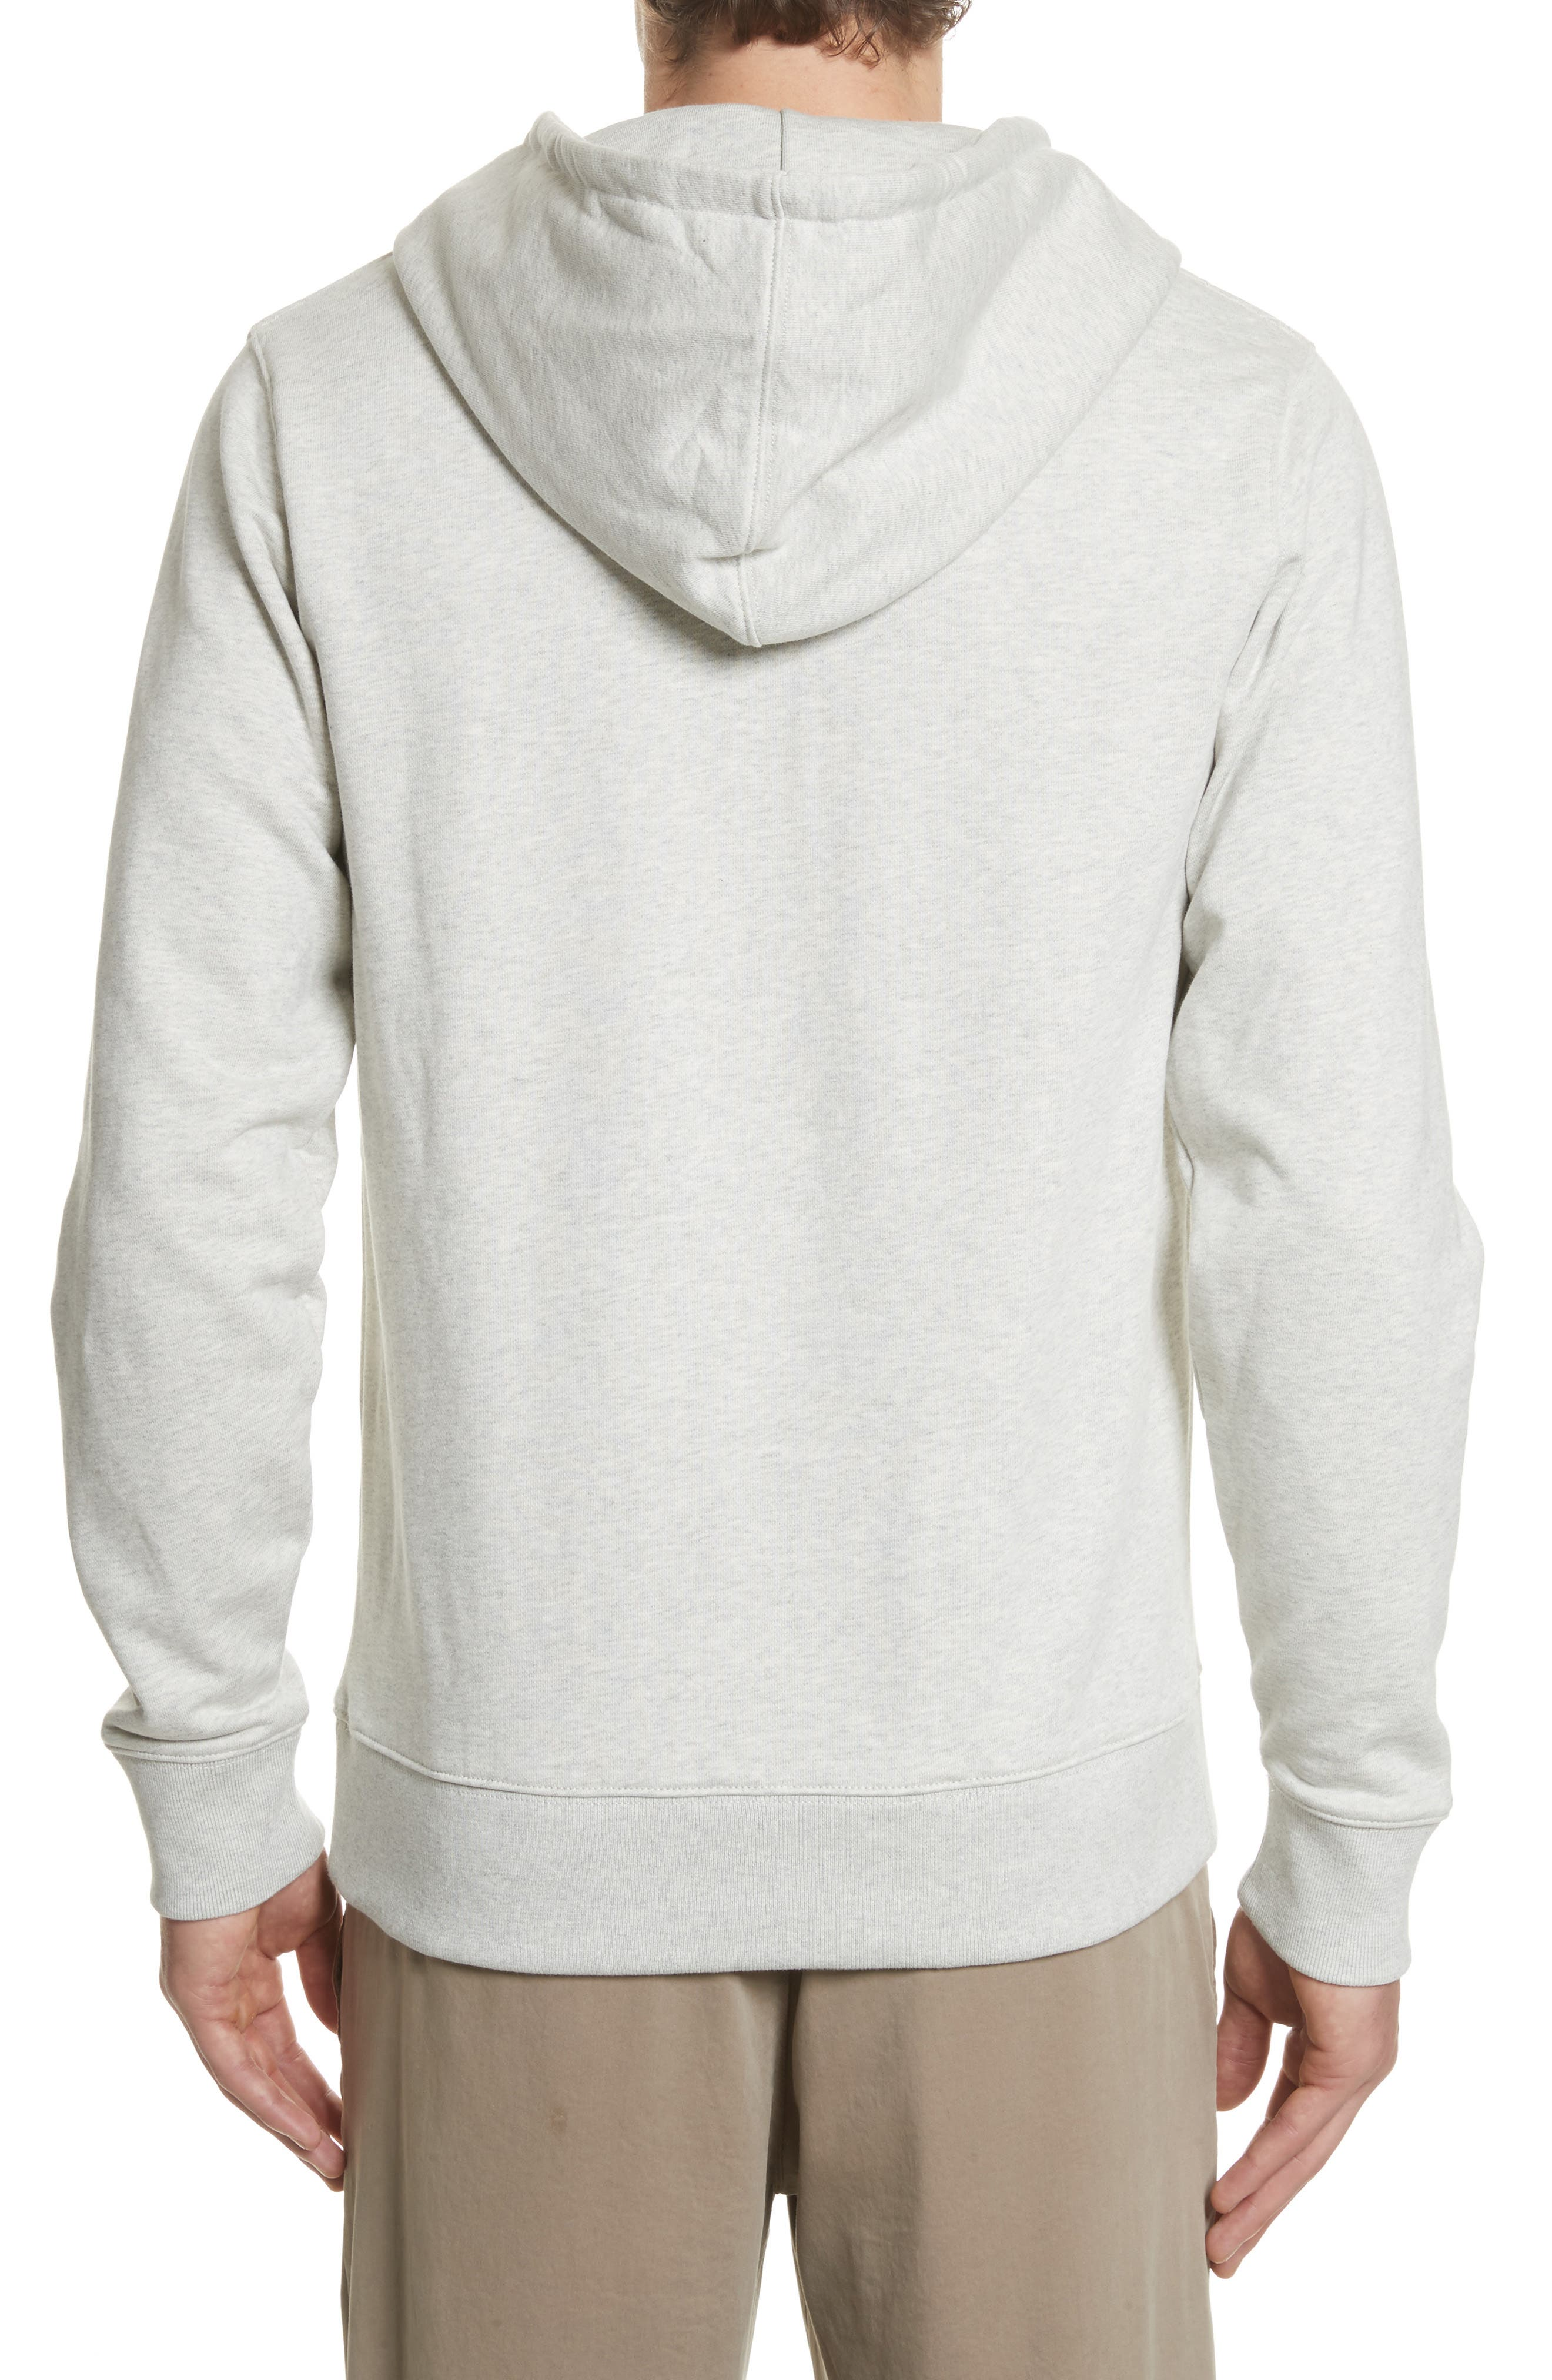 Ditch Graphic Hoodie,                             Alternate thumbnail 2, color,                             Natural Heather